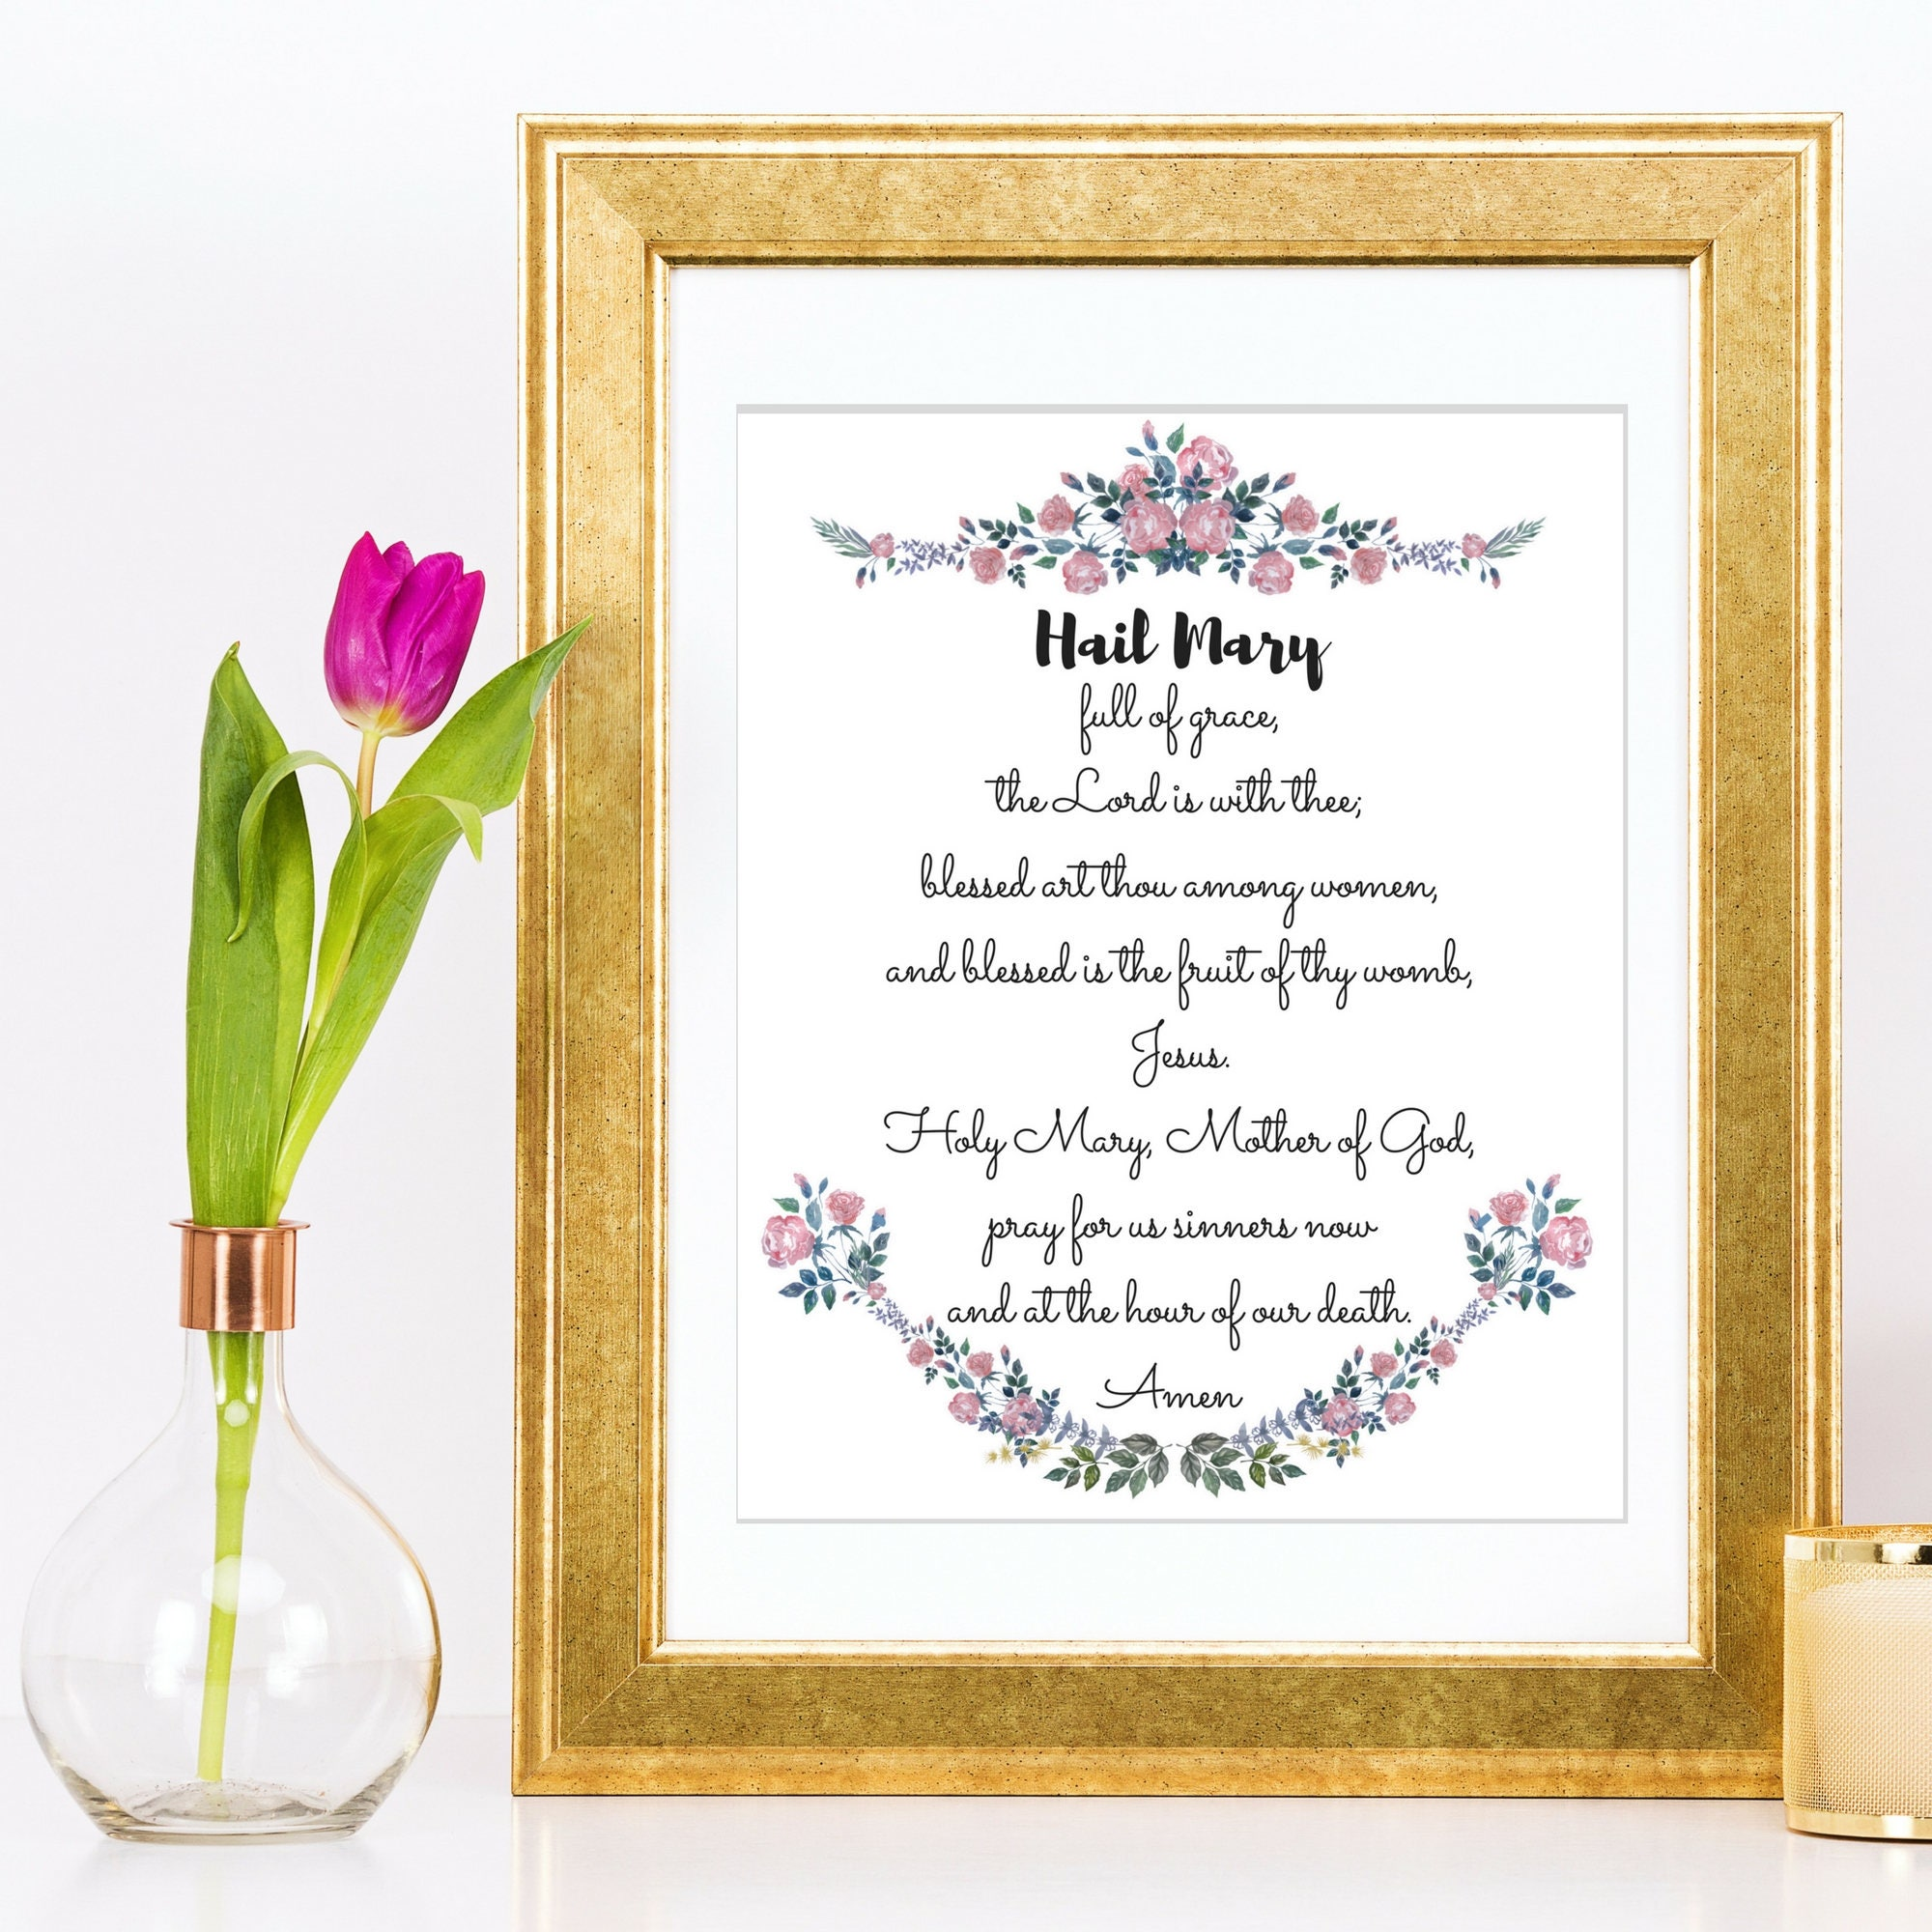 hail mary prayer printable watercolor floral anchor motif